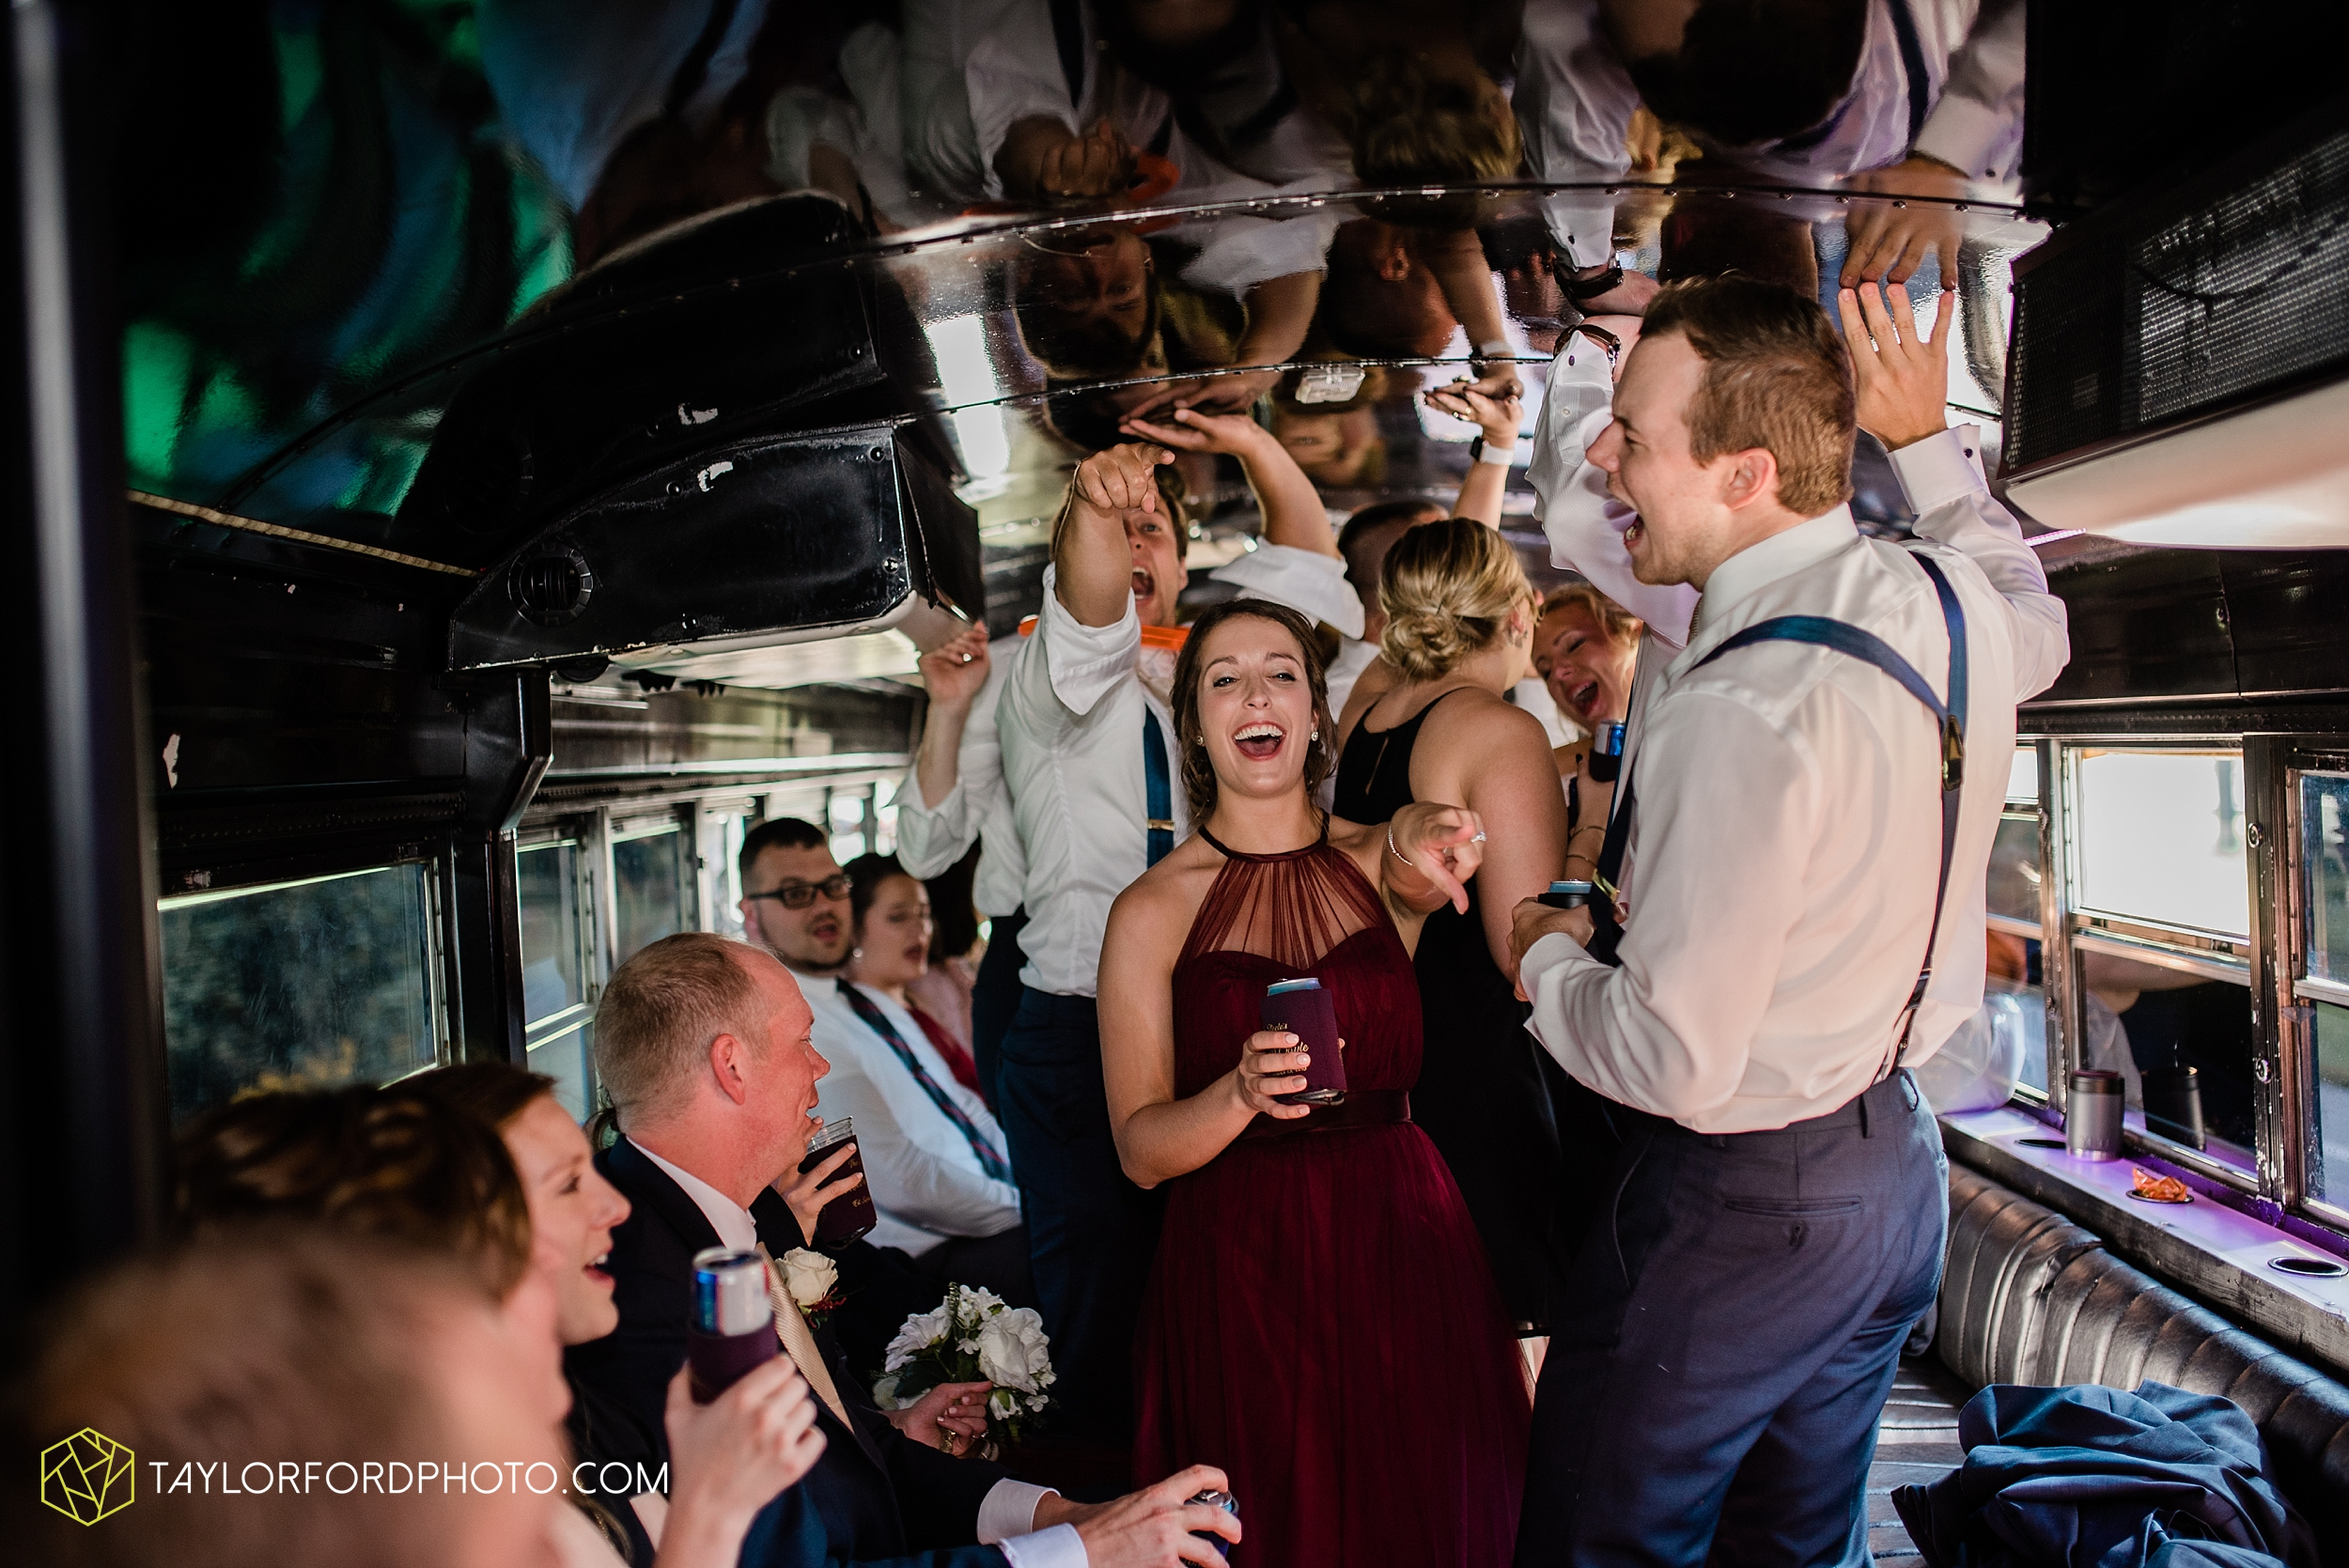 gayle-rayman-mike-steele-ottoville-ohio-wedding-immaculate-conception-parish-center-wedding-sycamore-lake-winery-wannamachers-photographer-taylor-ford-photography_0422.jpg